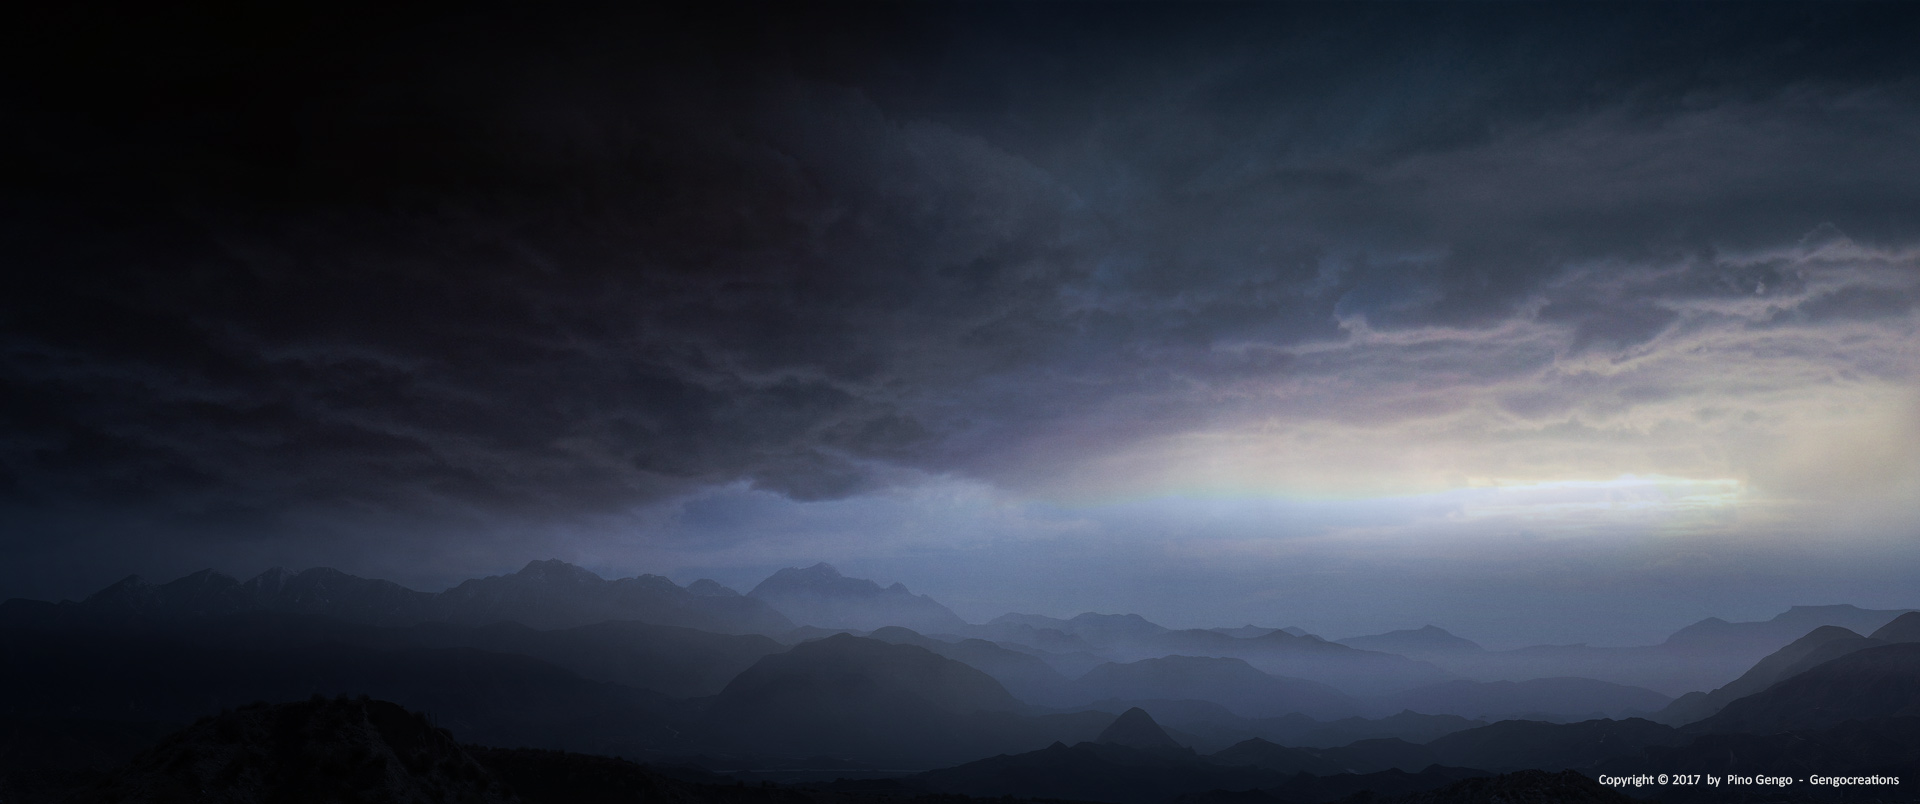 Pino Gengo: Stormy Landscape - Matte Painting